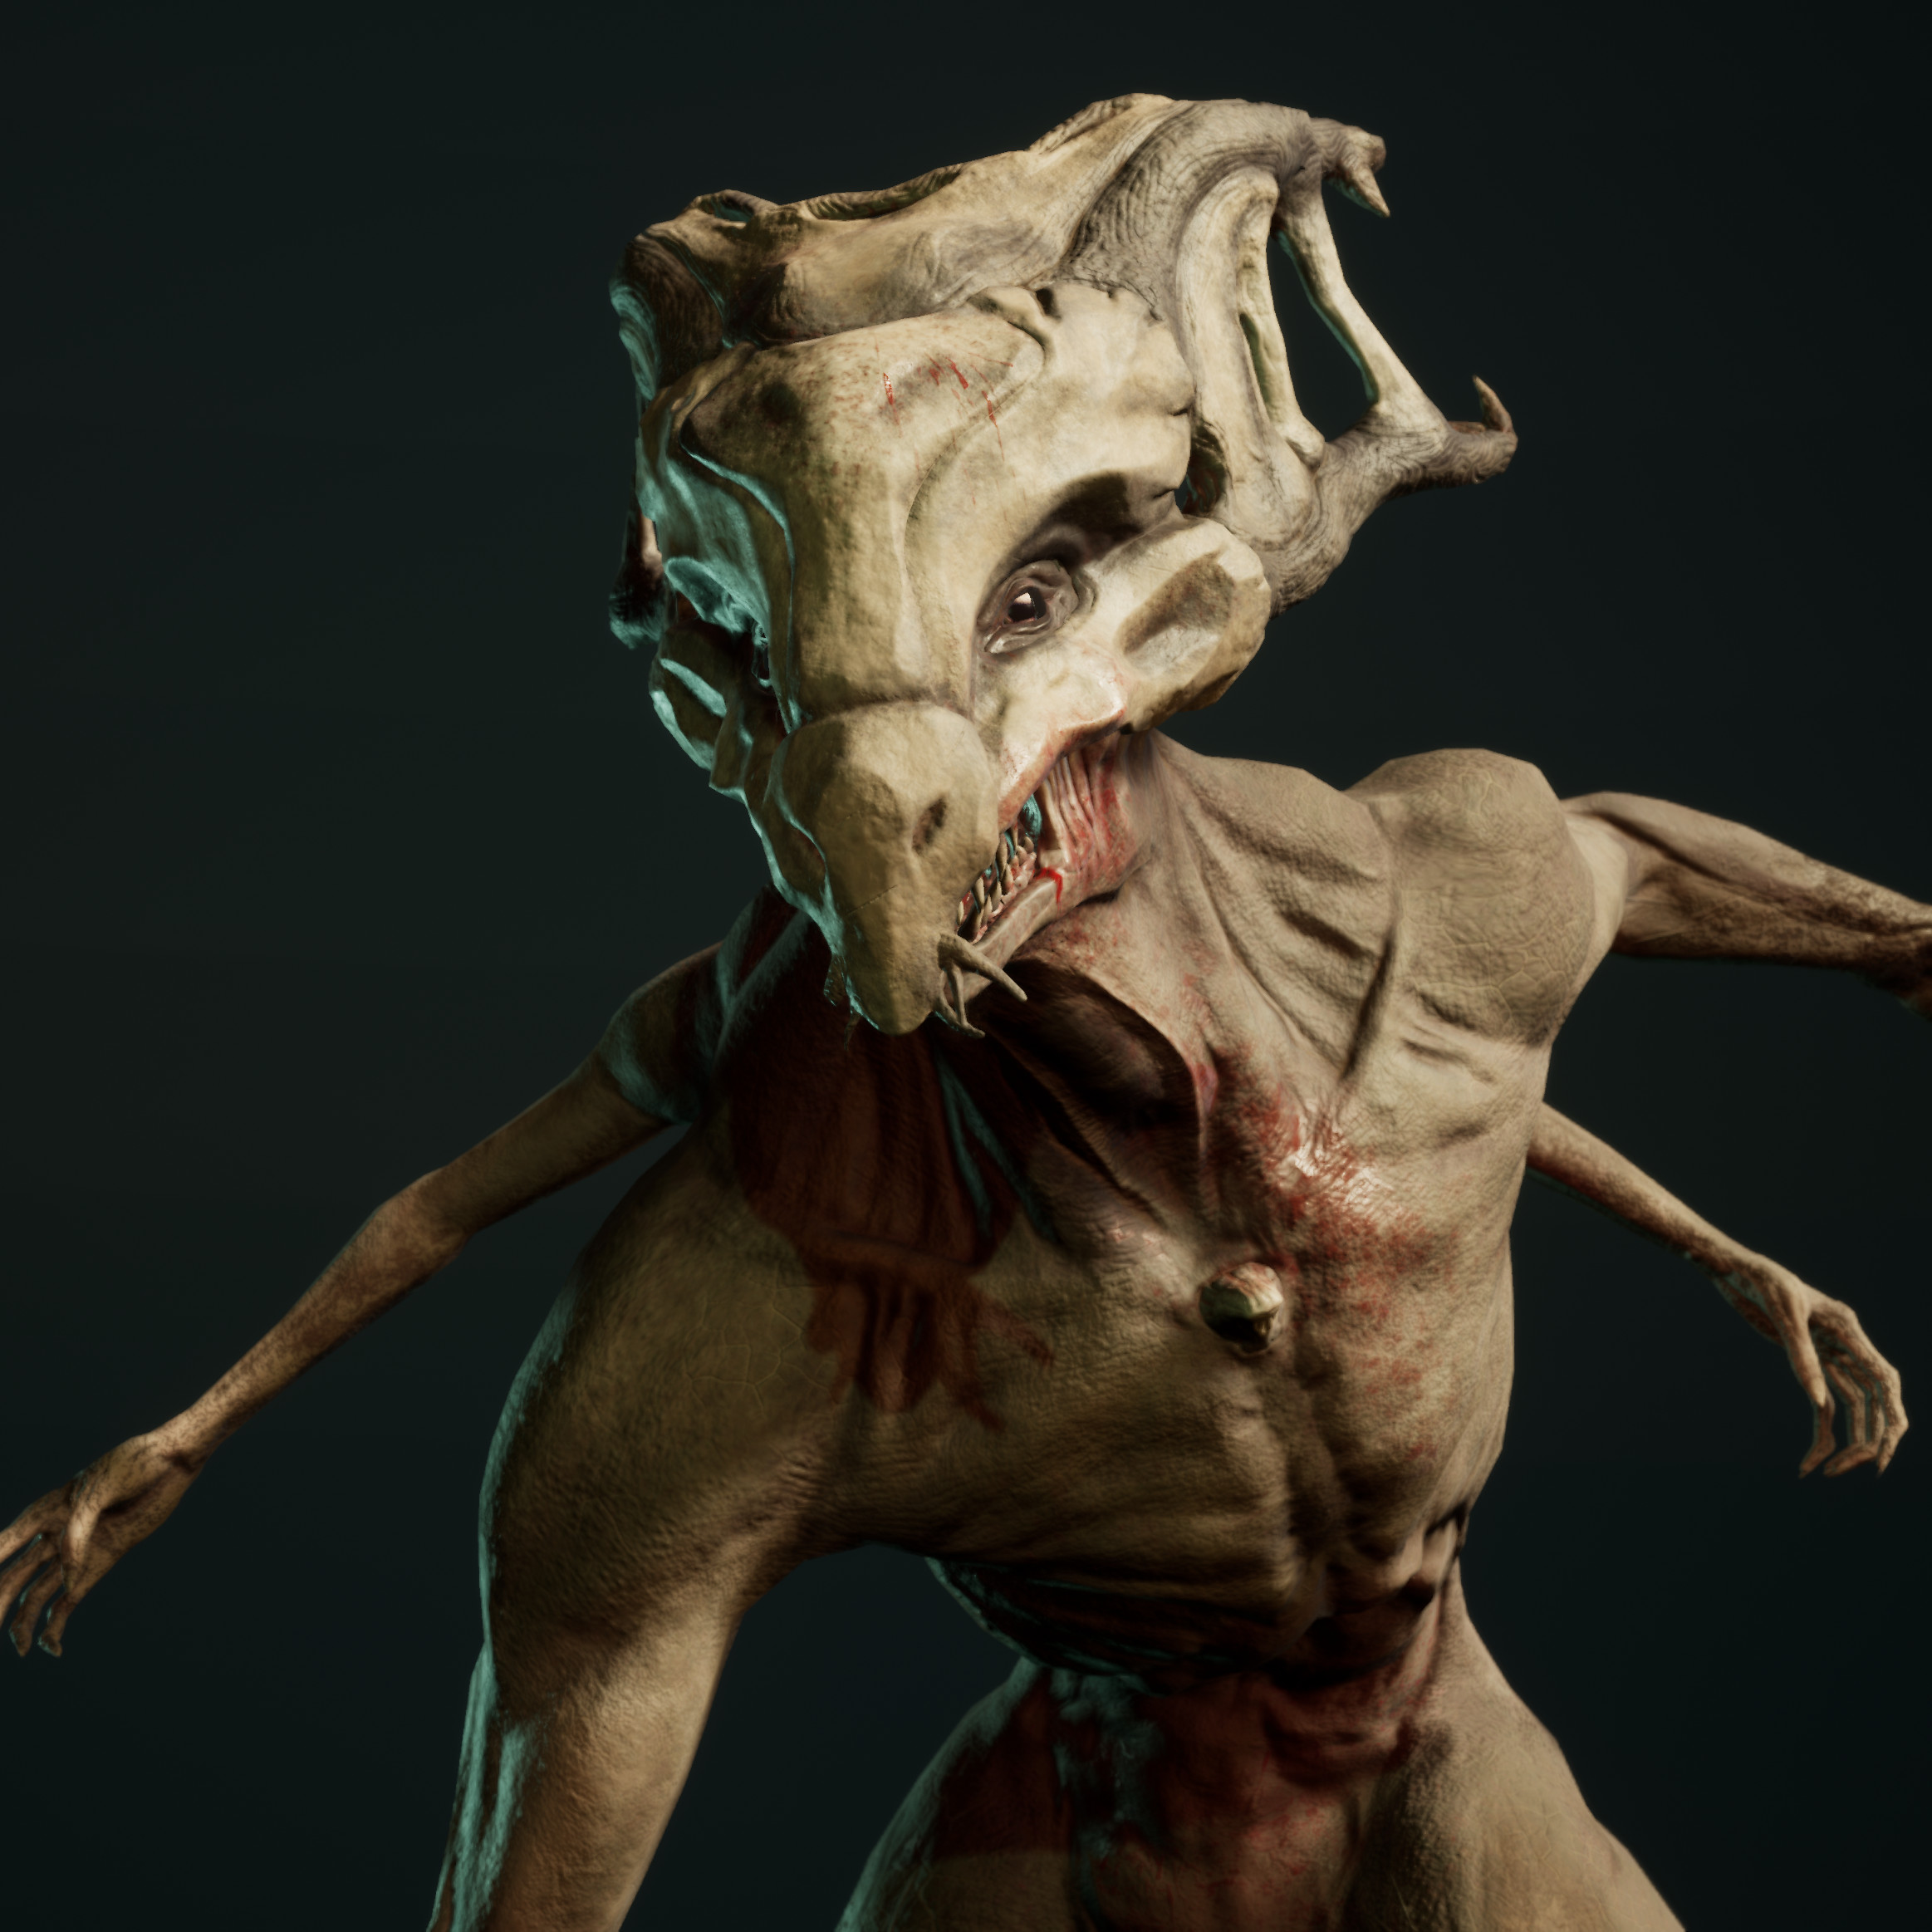 This character was rendered using Unreal Engine 4.